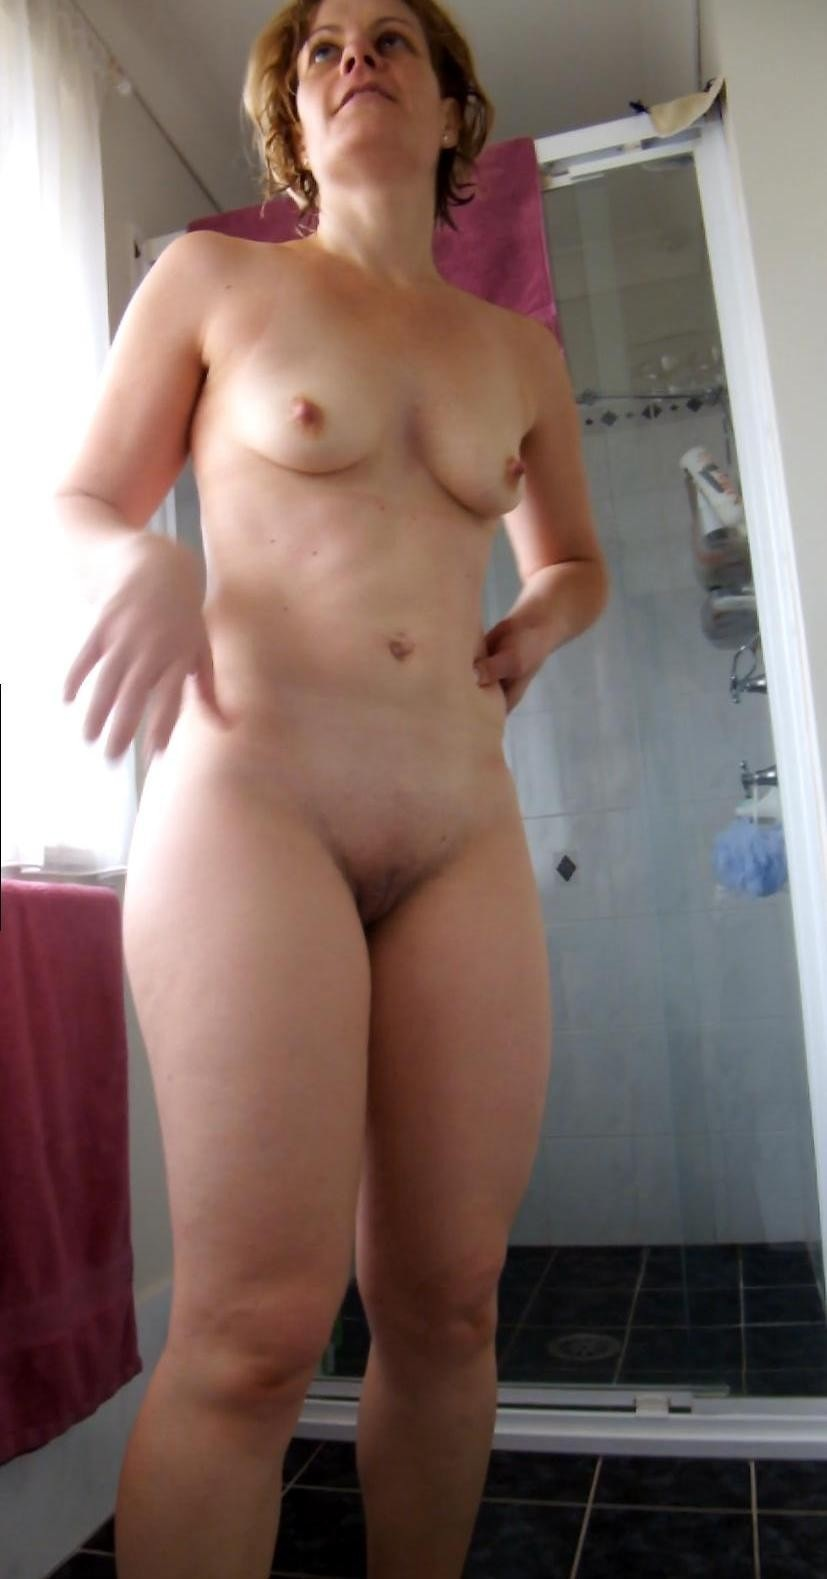 Dick stuffing. naked wife on the toilet All three